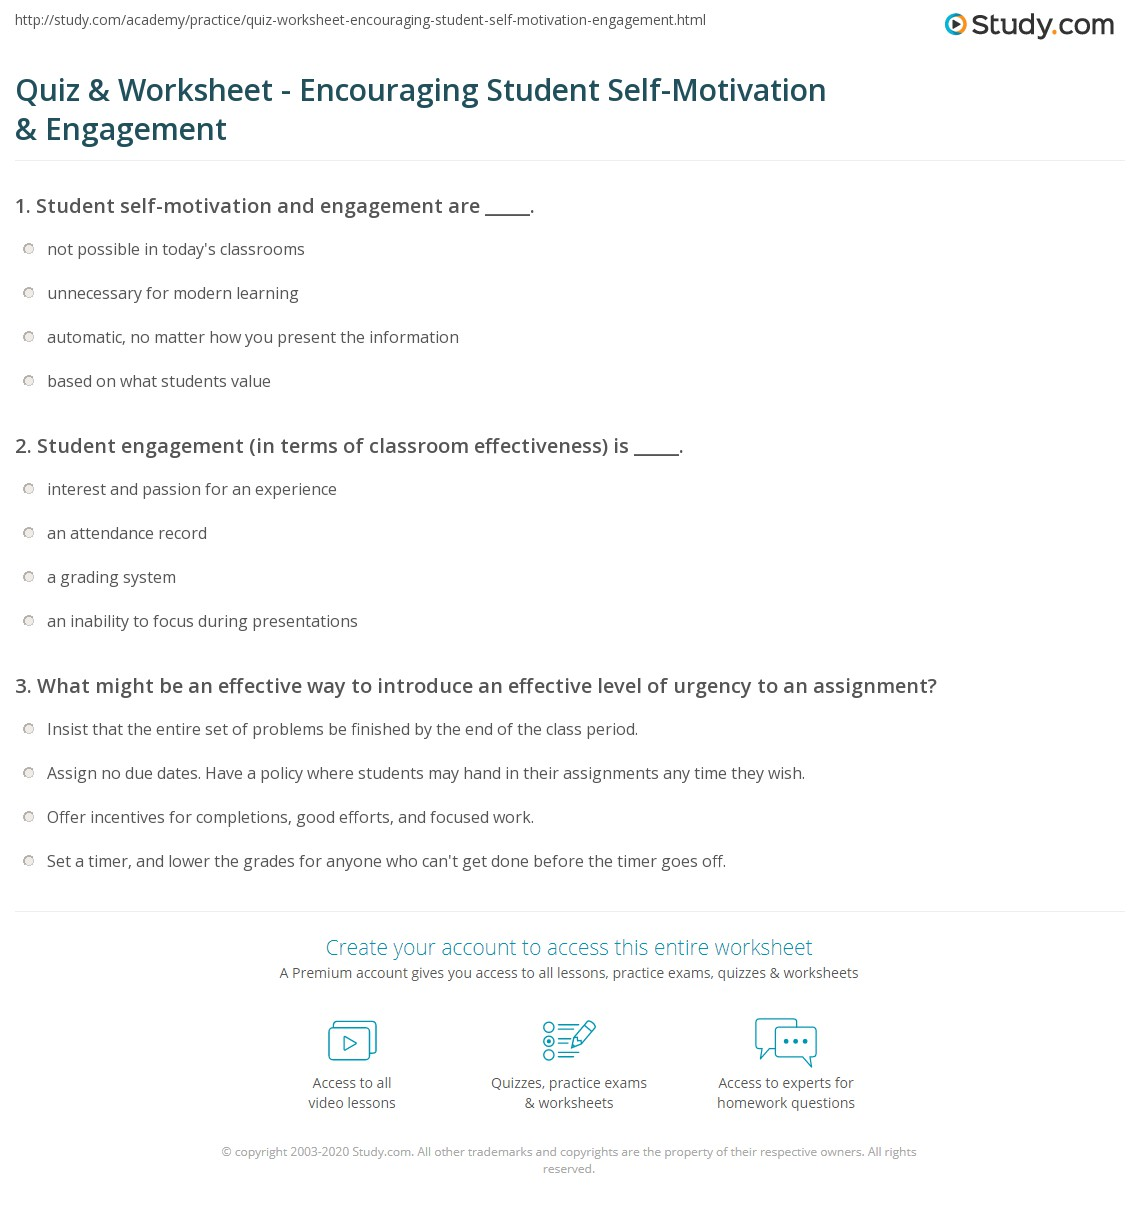 Worksheets Self Motivation Worksheets quiz worksheet encouraging student self motivation engagement print how to encourage worksheet